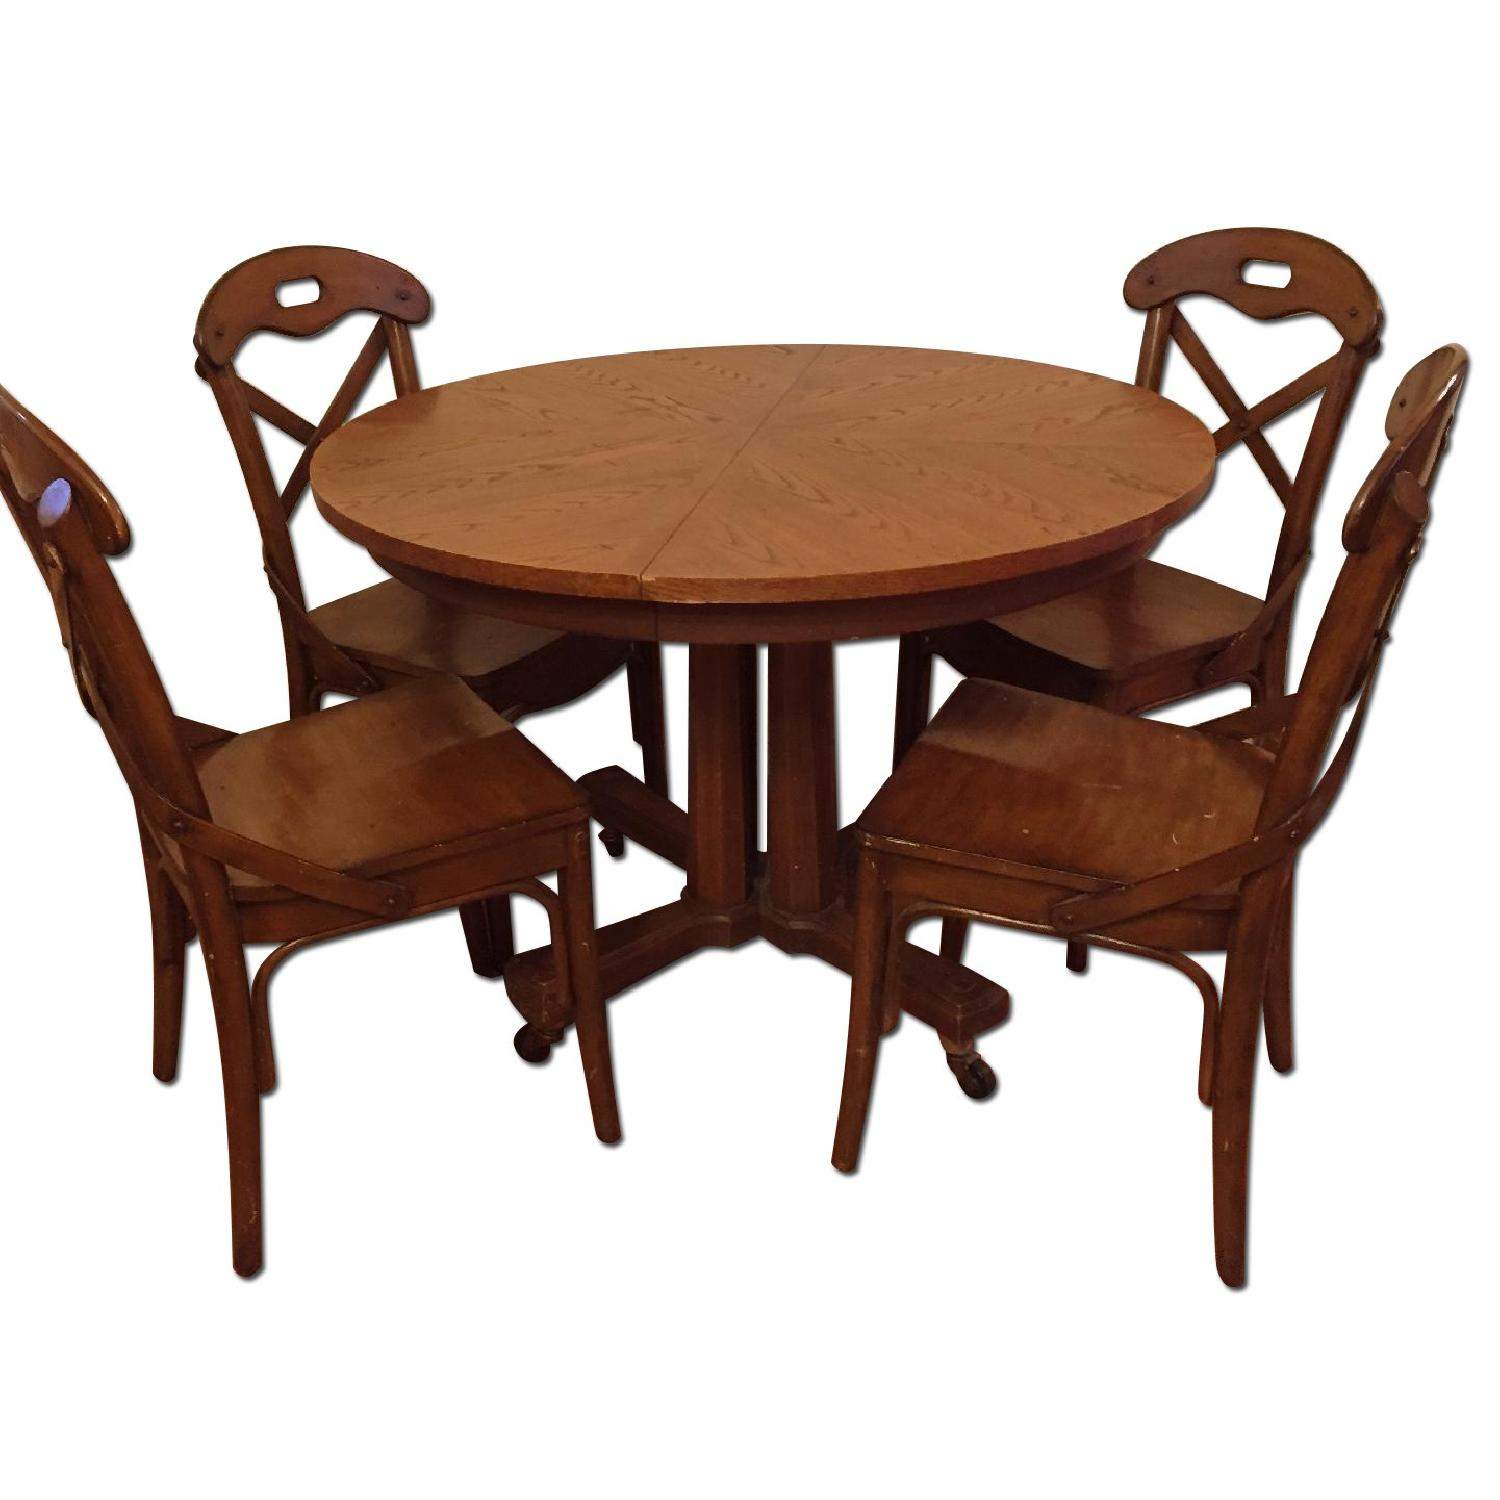 Pier 1 imports Wood Marchella Dining Room Chairs - image-0